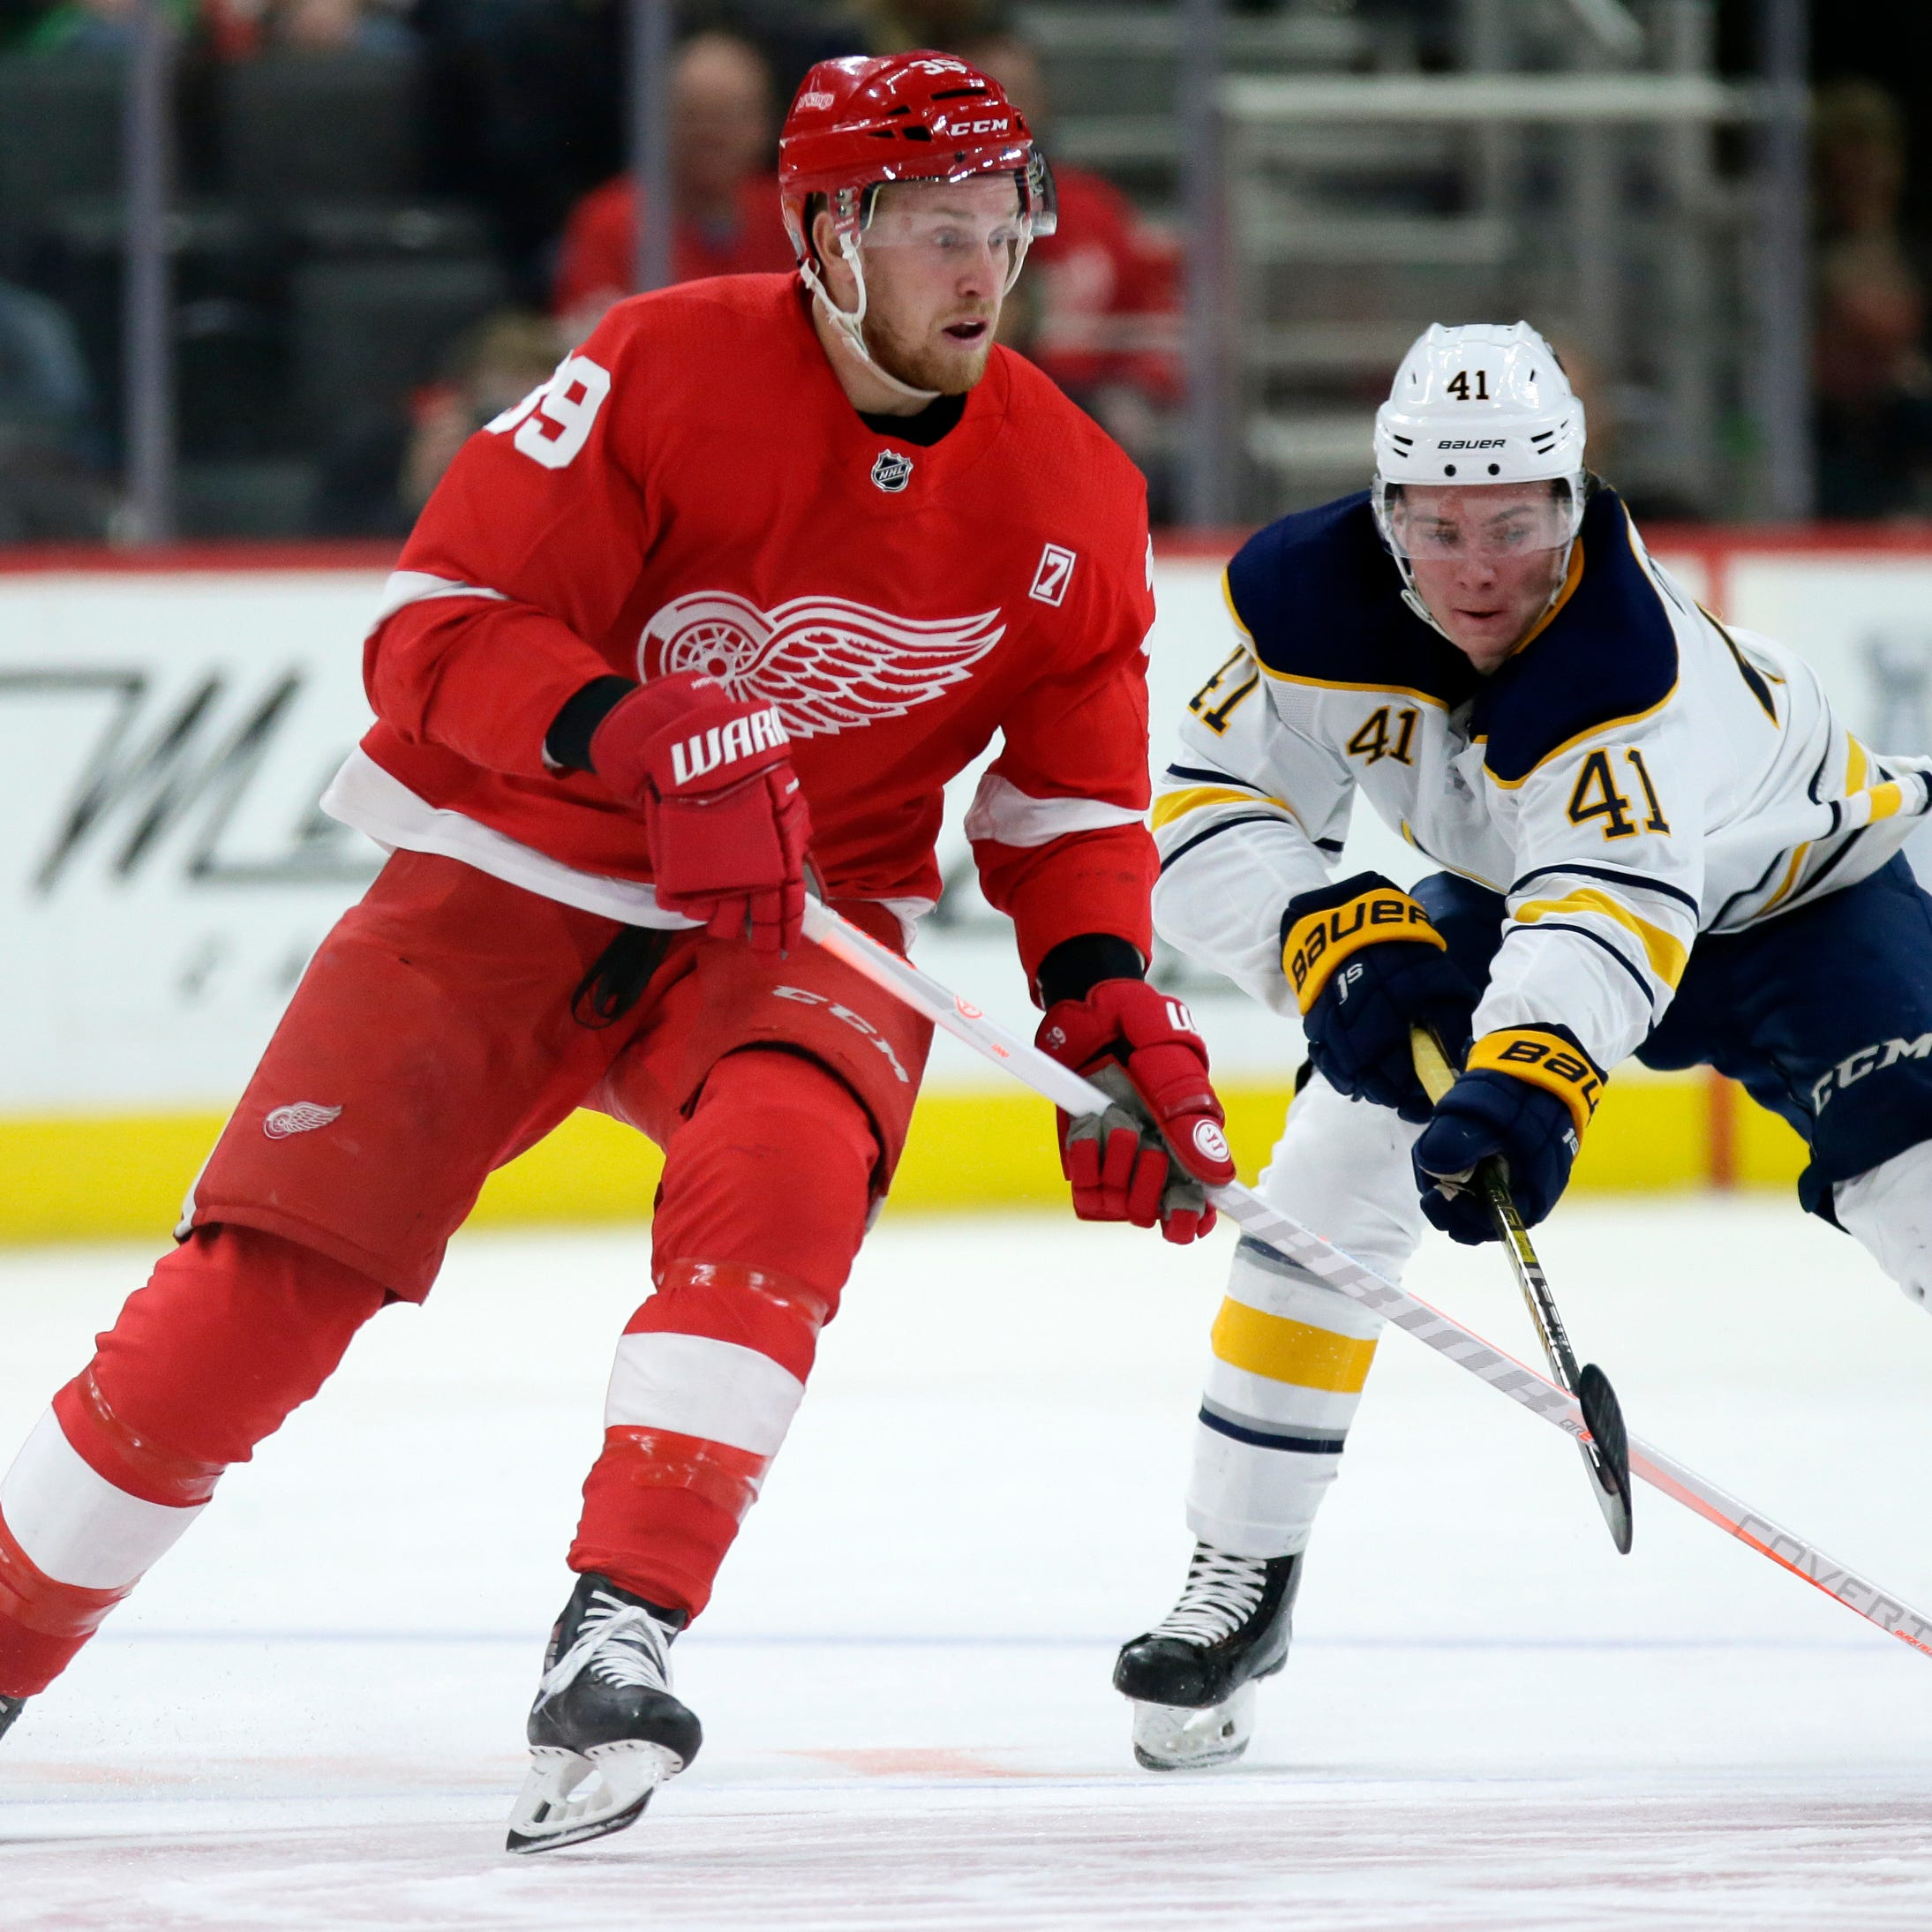 Detroit Red Wings end bad season: 'Hope we're never in this situation again'